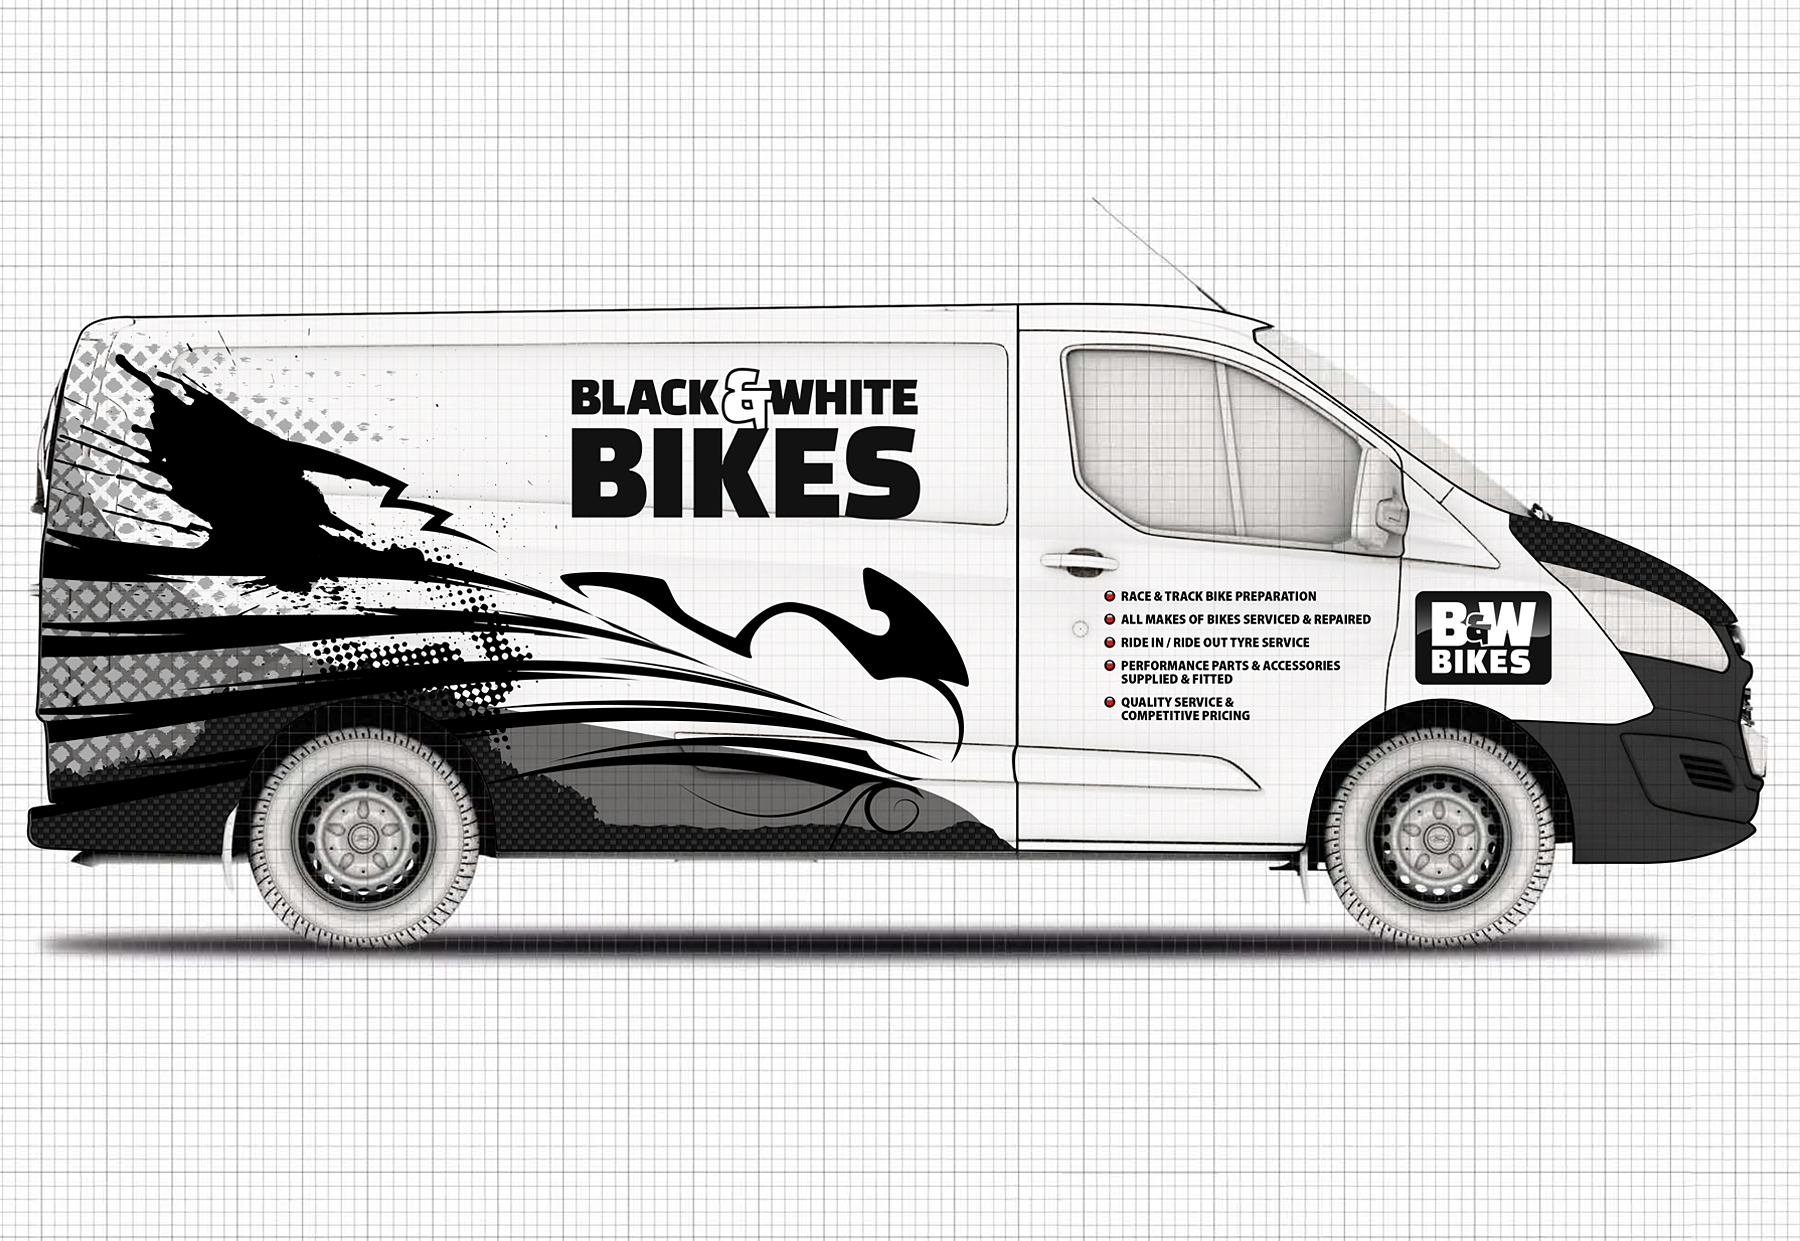 B&W Bikes – Van Graphics